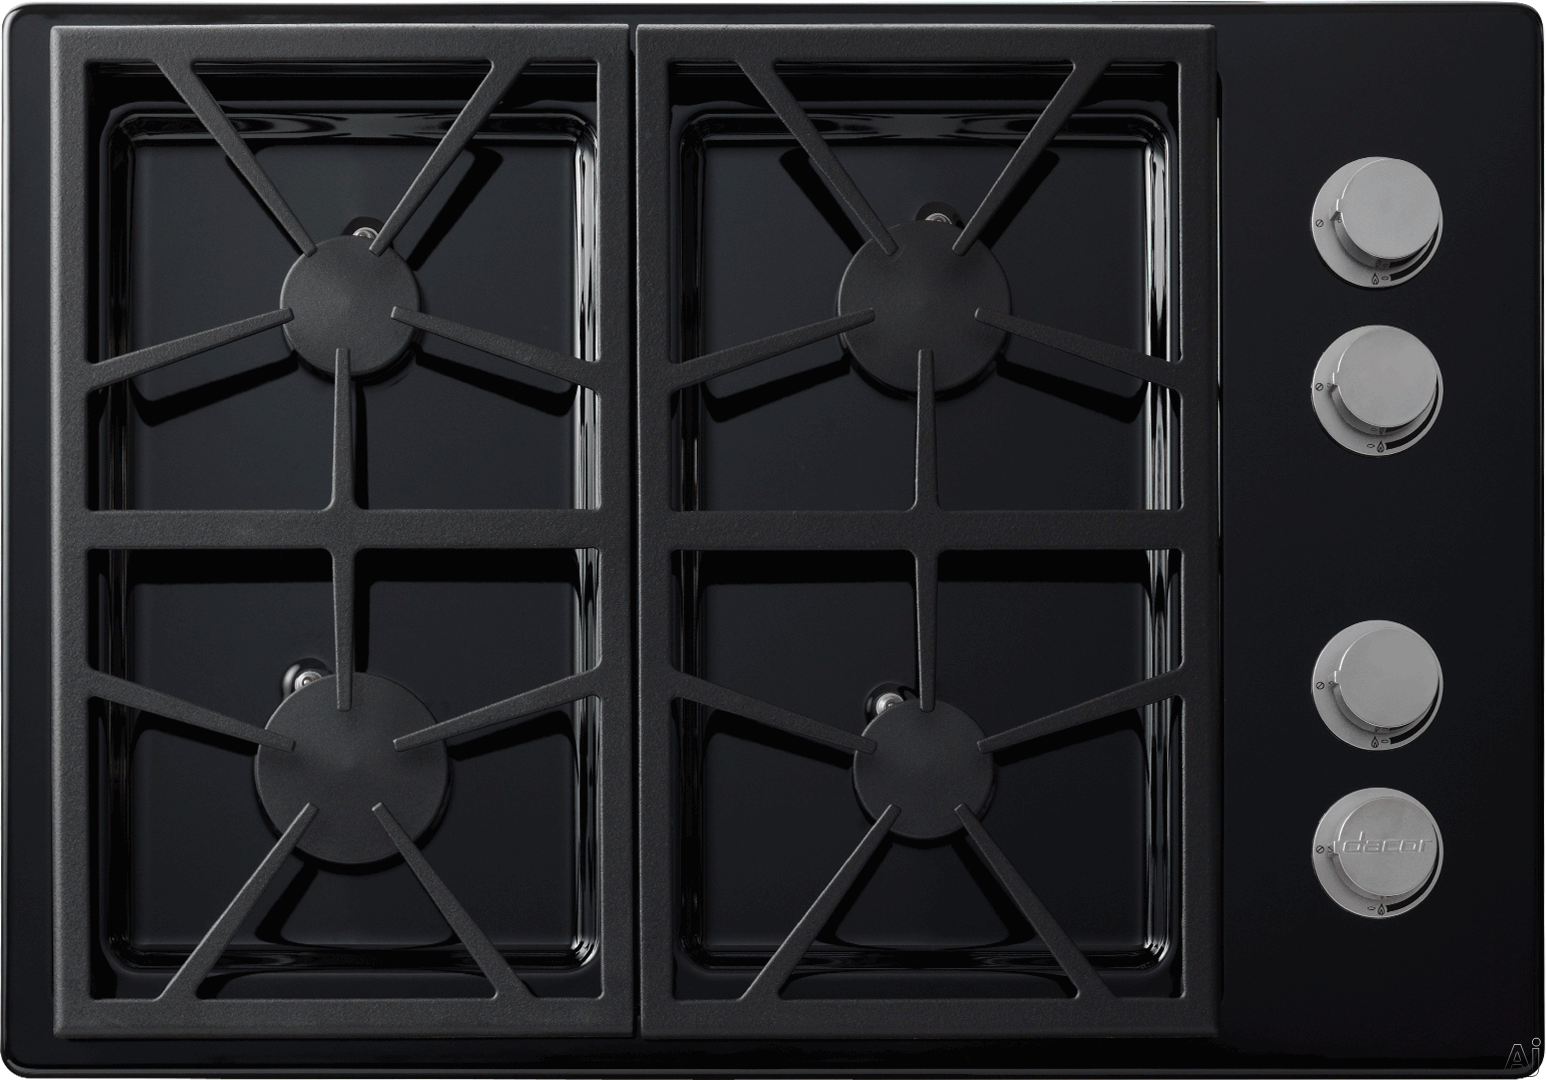 Dacor Distinctive DTCT304GBNG 30 Inch Gas Cooktop with Perma-Flame Technology, SmartFlame Technology, Continuous Grates, 4 Sealed Burners, 43,500 BTUs, Spill Basin with PermaClean Finish and Downdraft Compatible: Black, Natural Gas